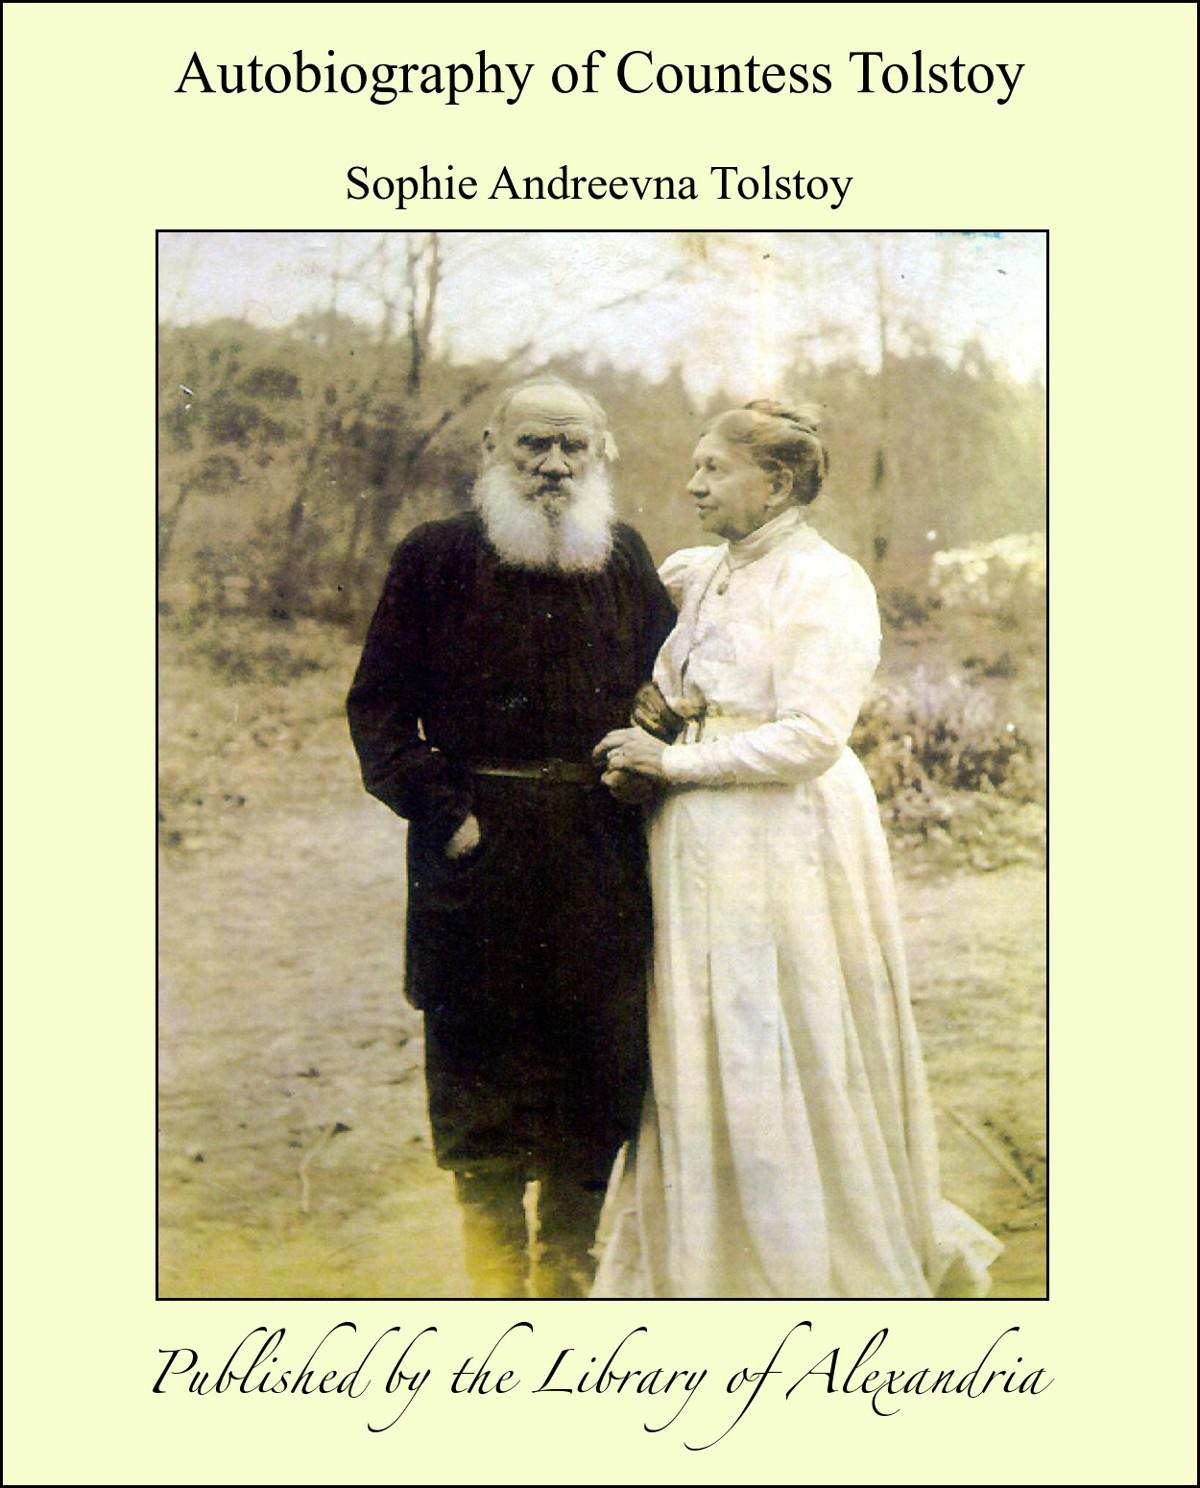 Autobiography of Countess Tolstoy